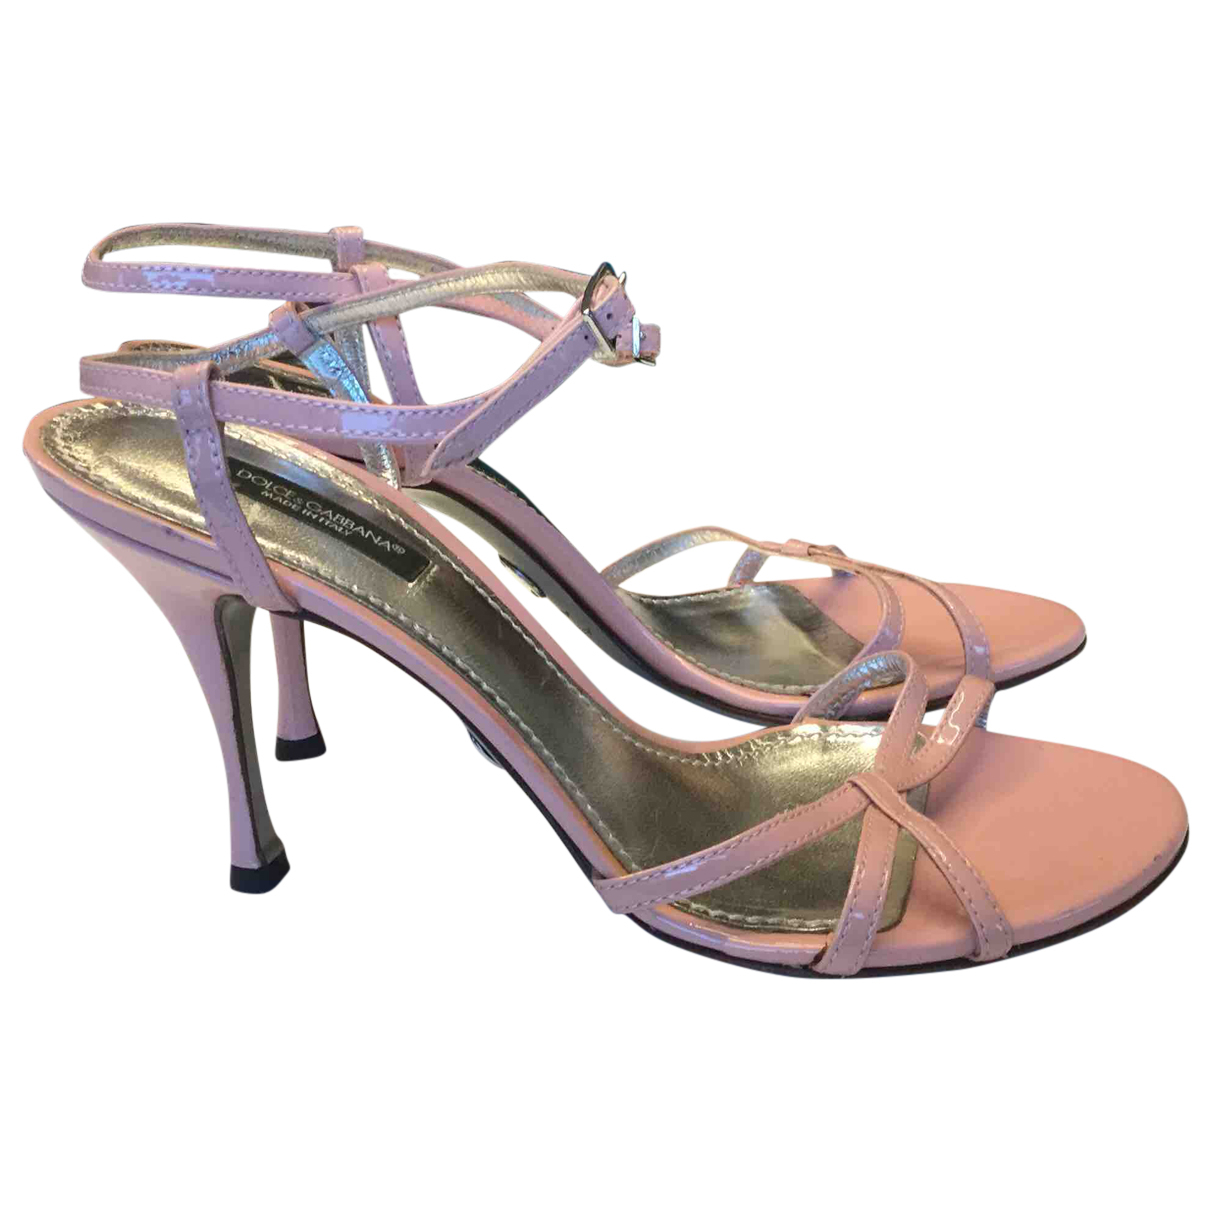 Dolce & Gabbana N Pink Patent leather Sandals for Women 37 IT